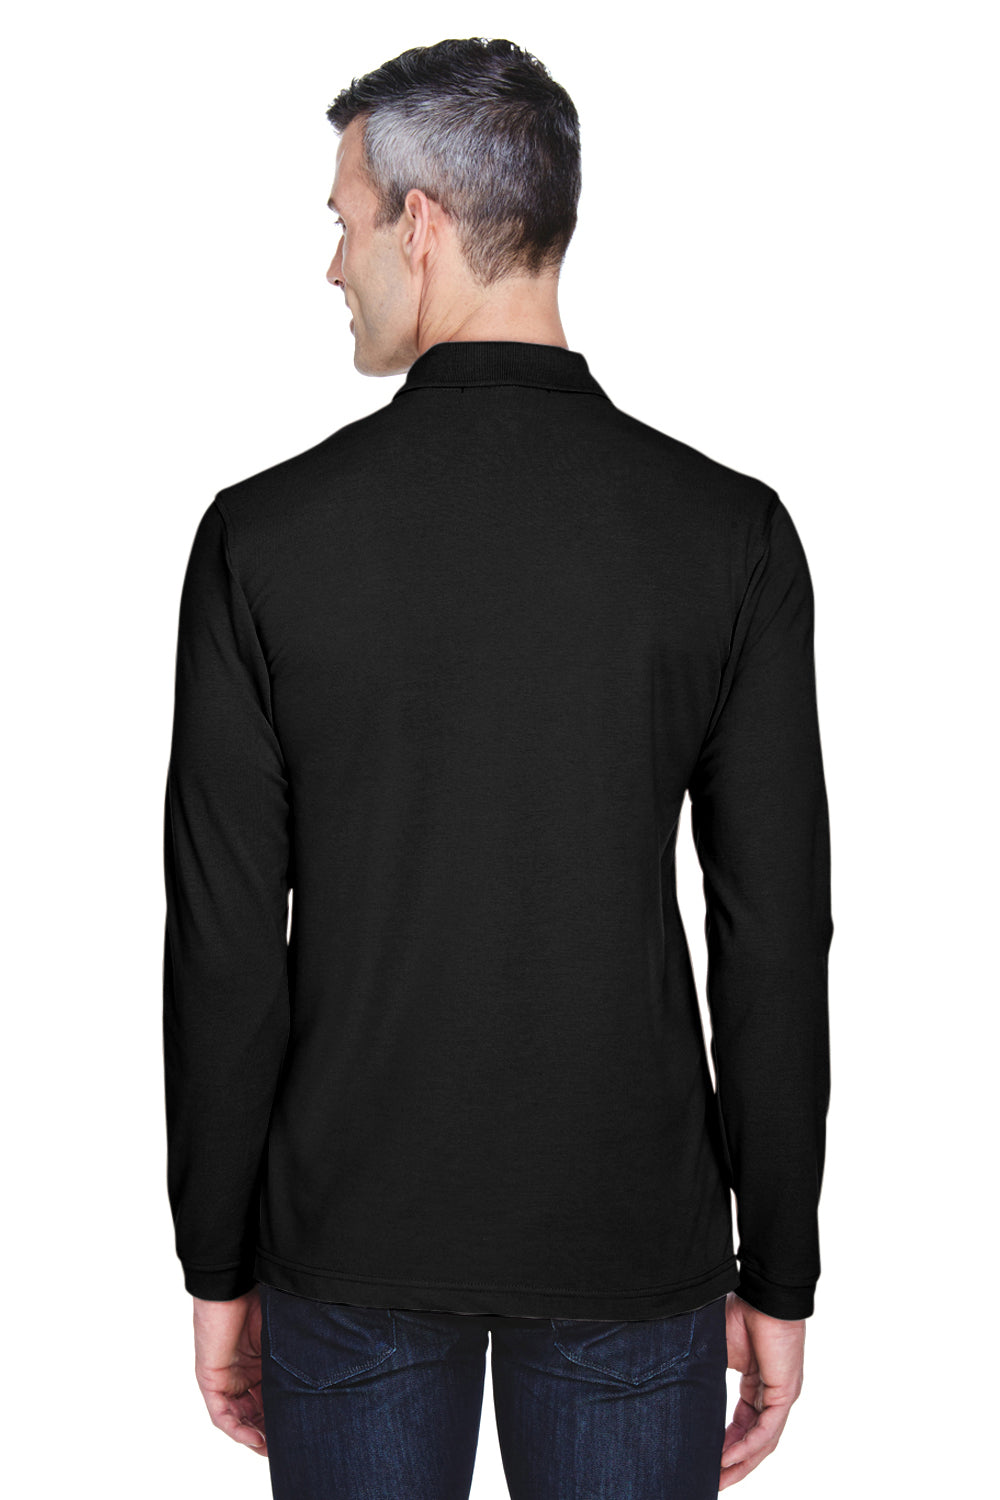 Harriton M265L Mens Easy Blend Wrinkle Resistant Long Sleeve Polo Shirt Black Back